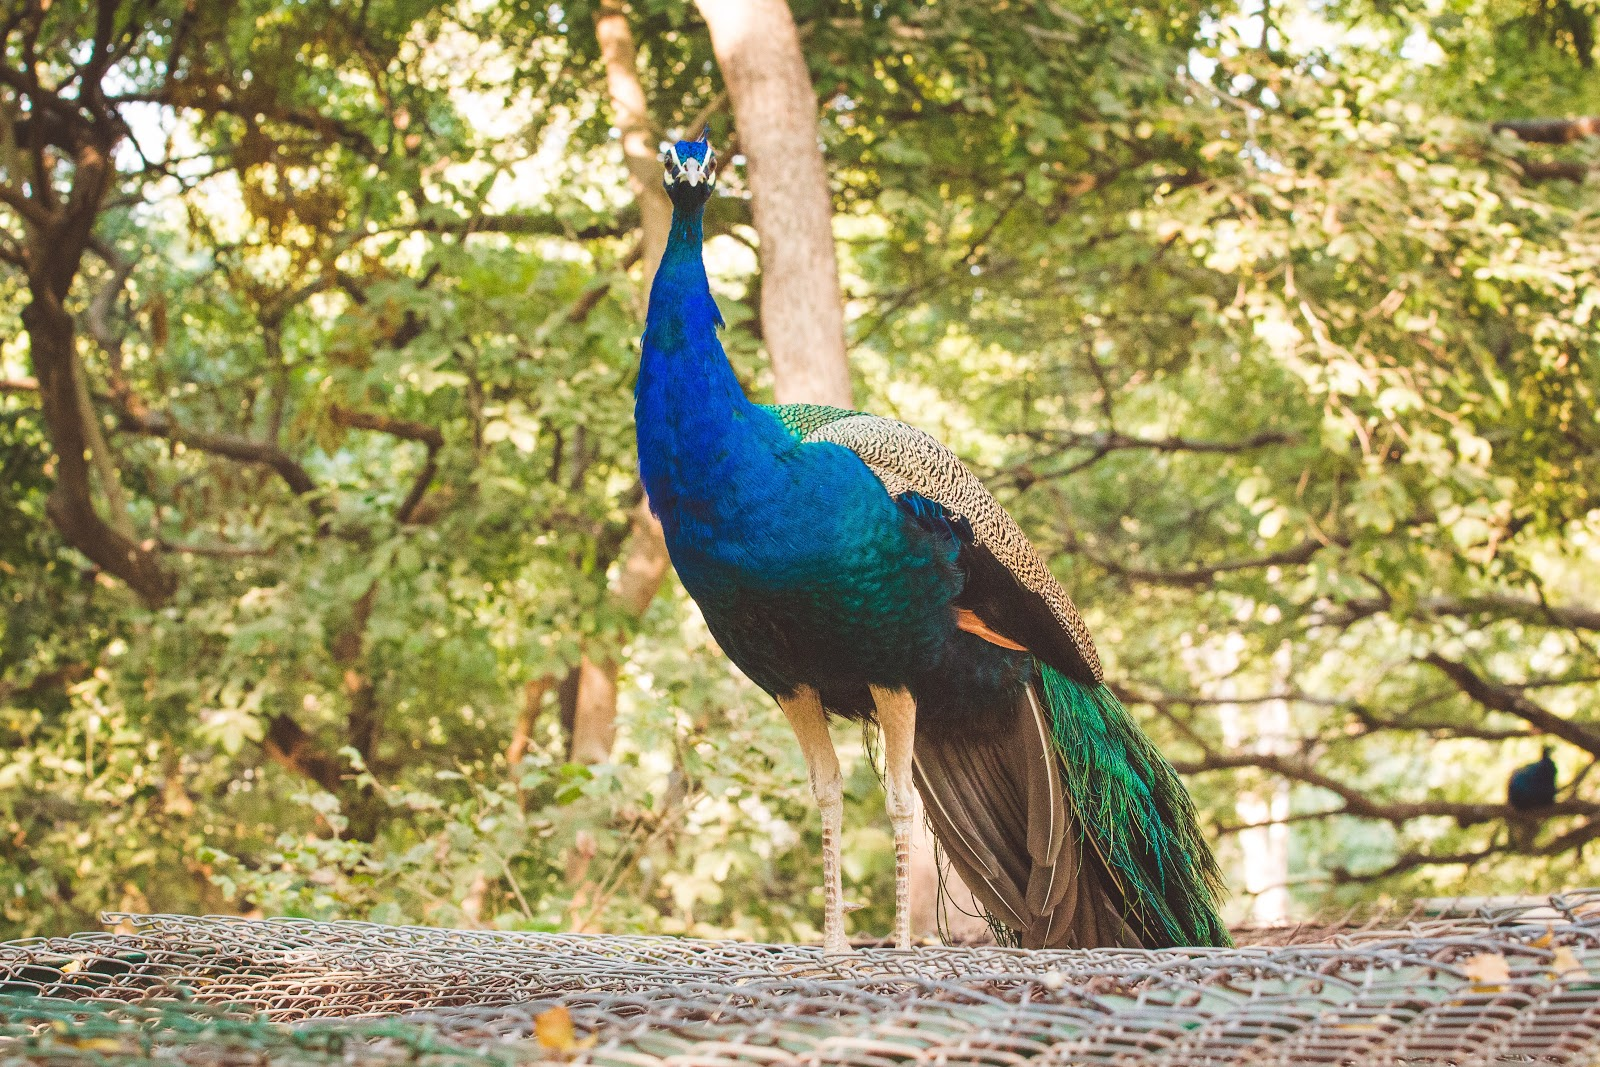 peacock-near-trees-pictures